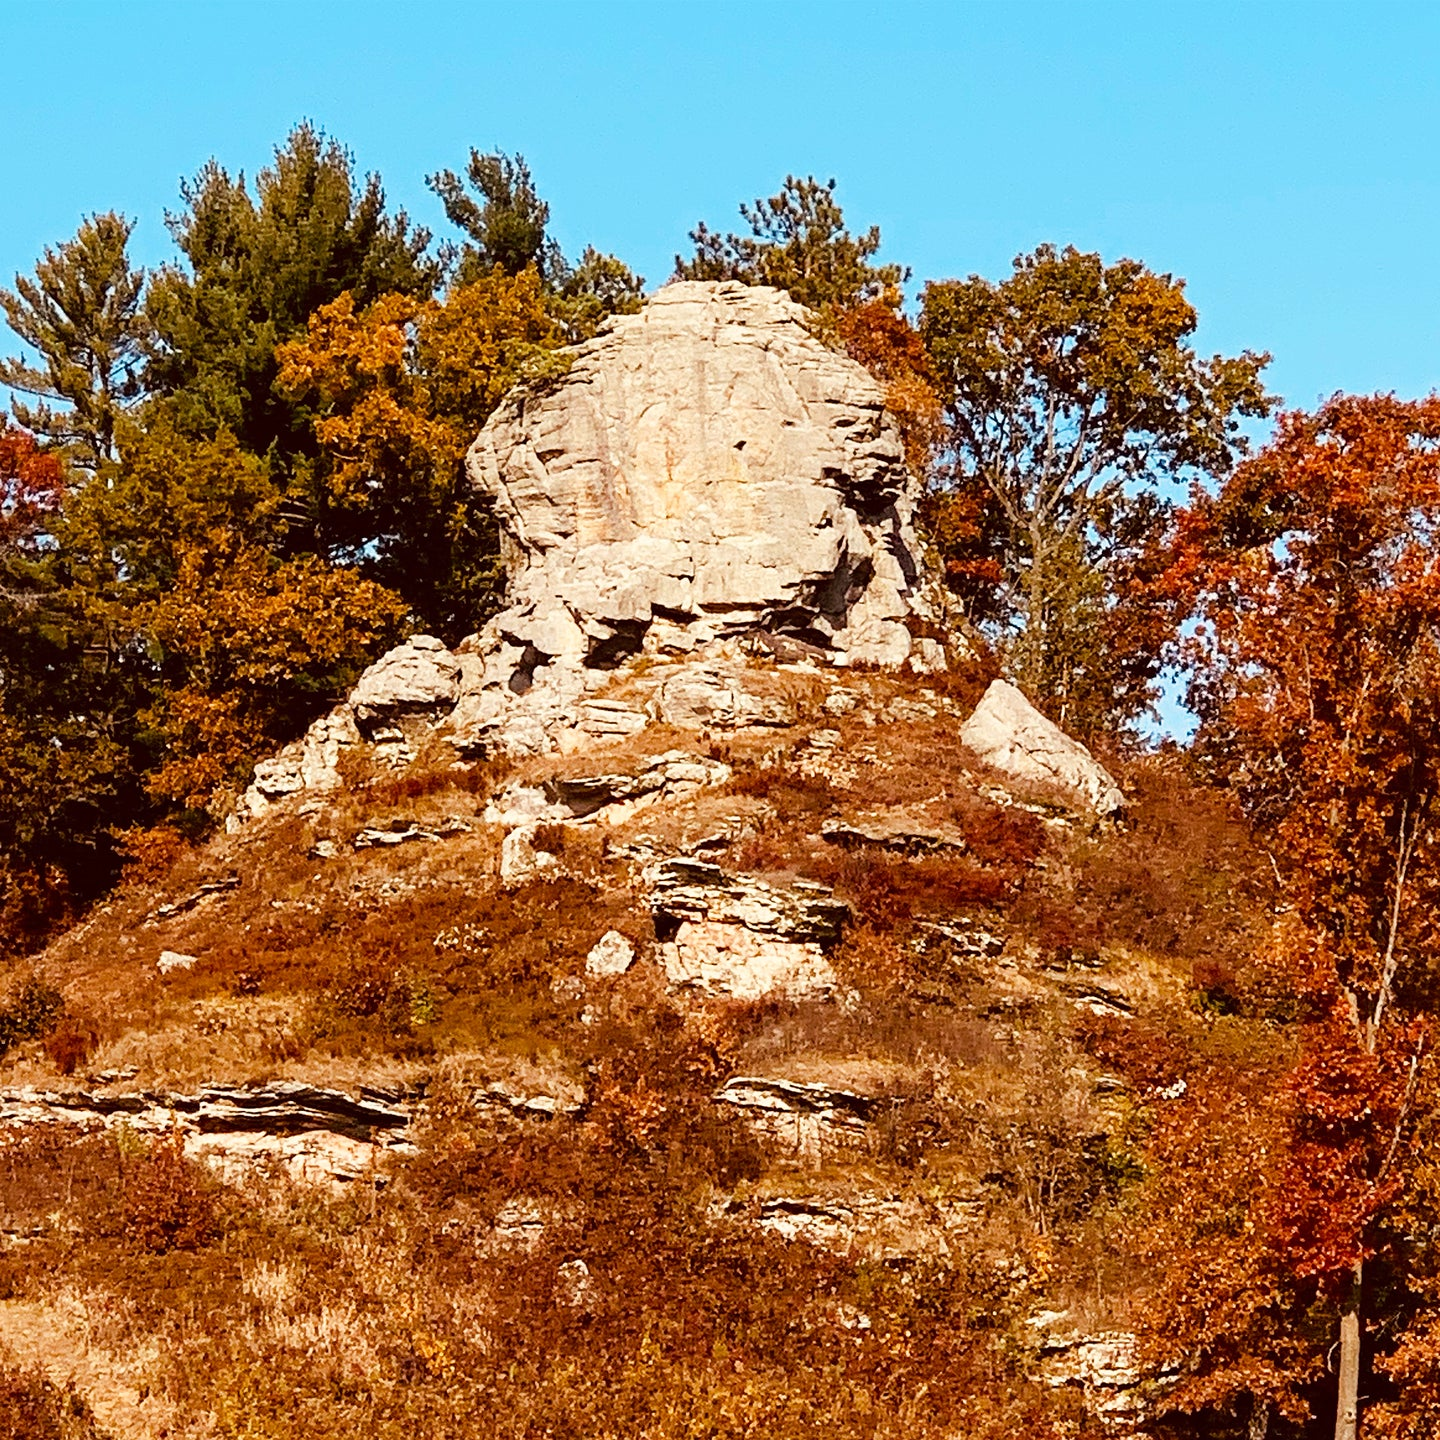 Meet our favorite outcropping, Donald Rock